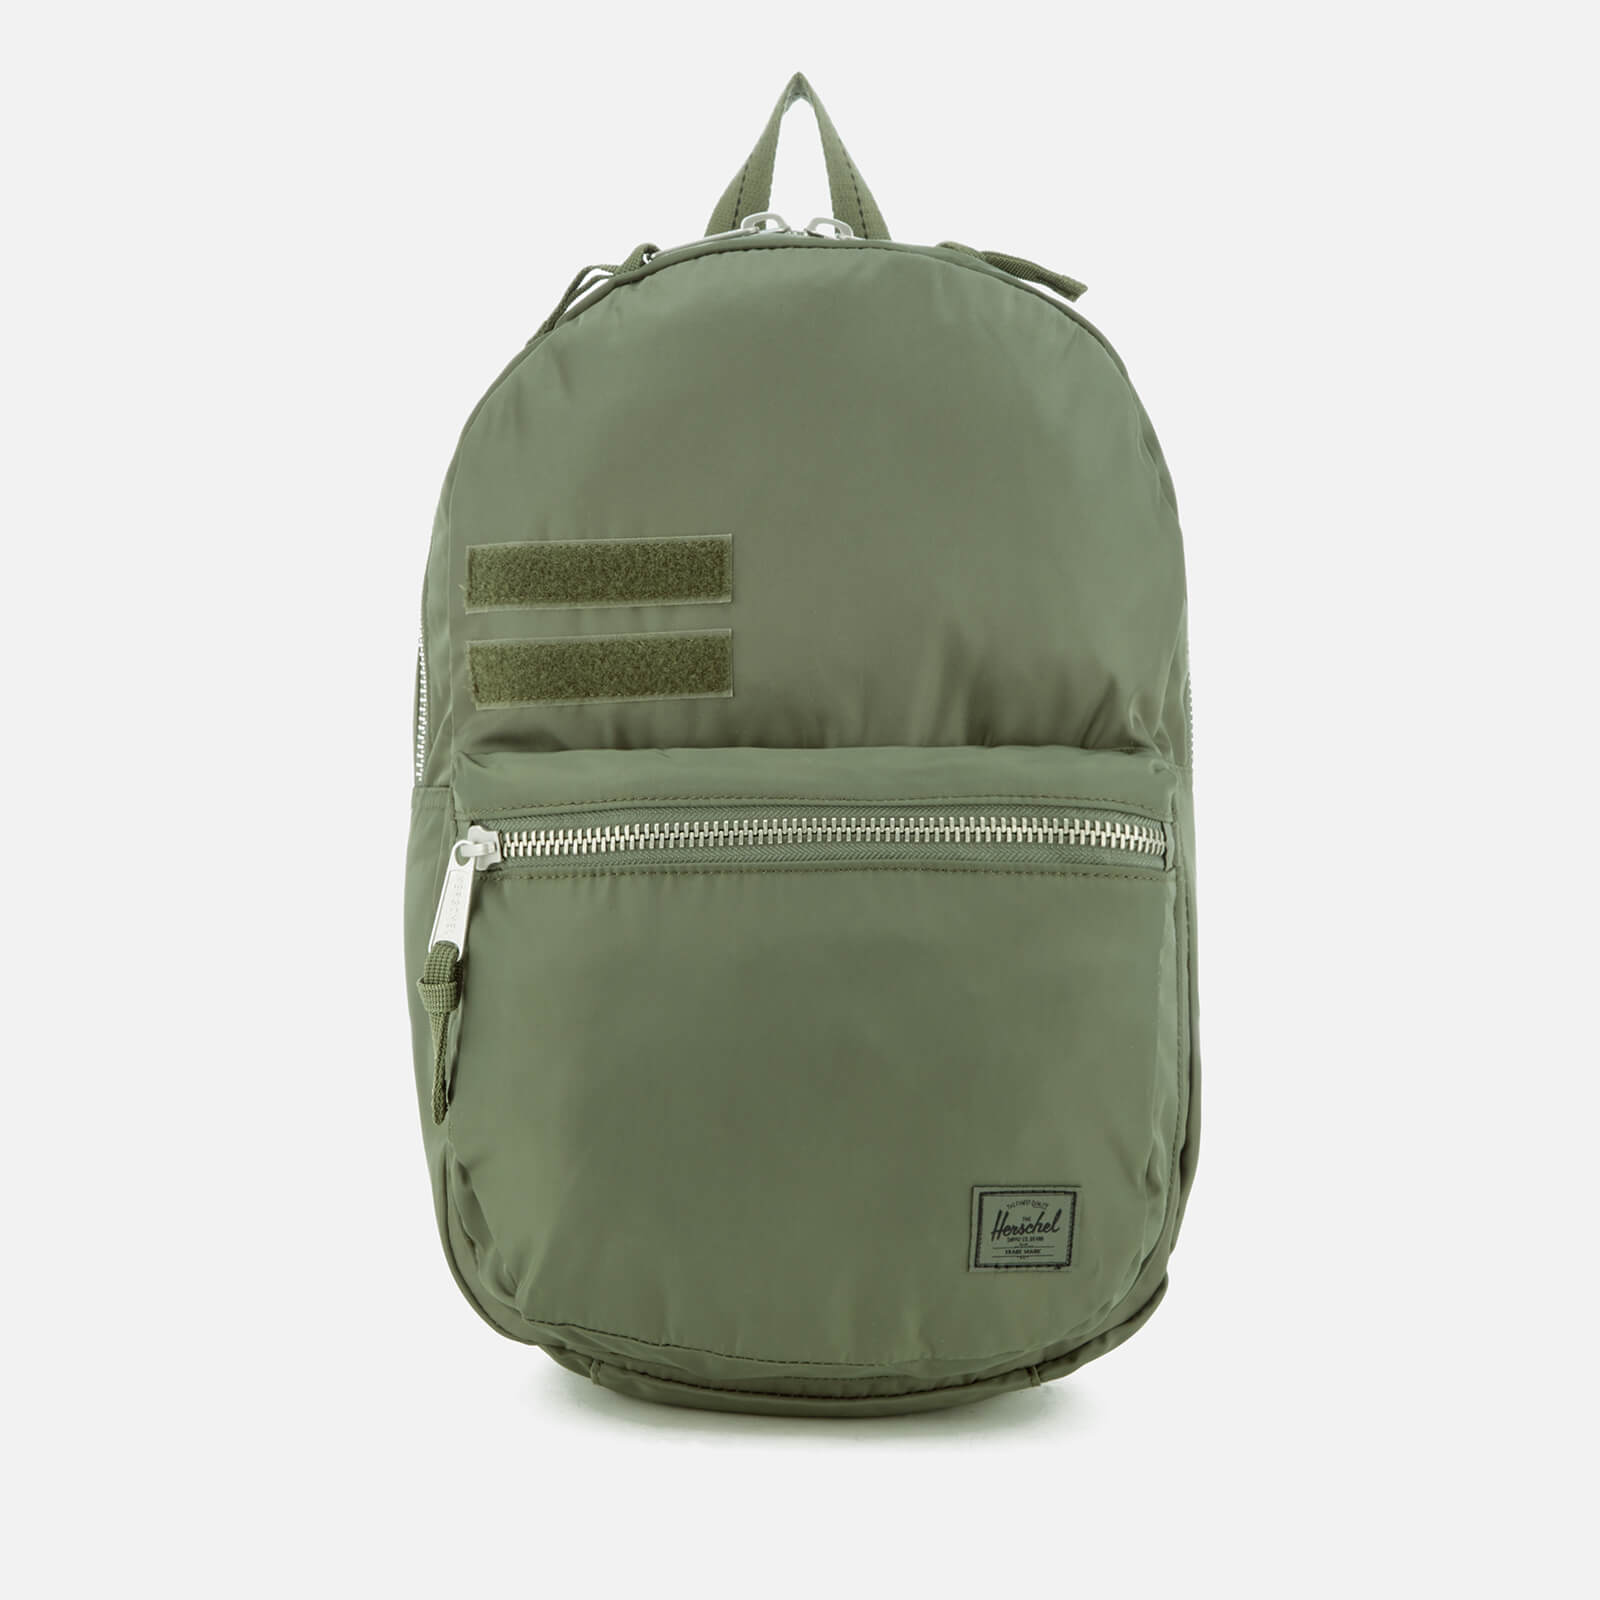 ad152769087 Herschel Supply Co. Surplus Lawson Backpack - Beetle - Free UK Delivery  over £50